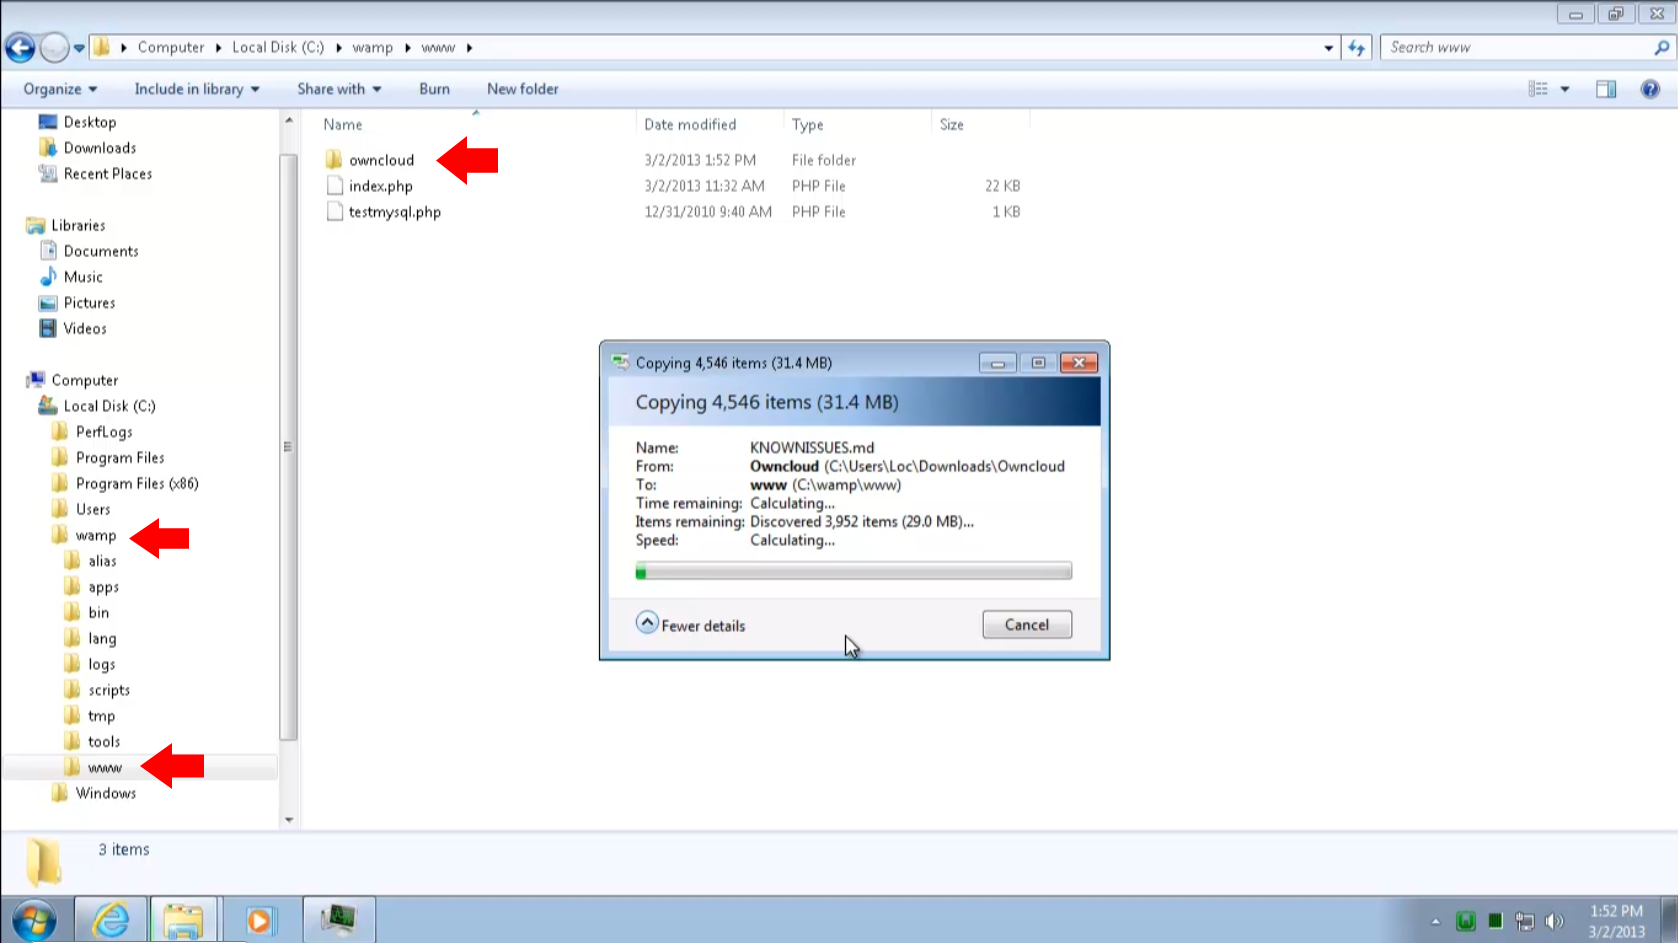 Install and Configure ownCloud Server on Windows 7 using